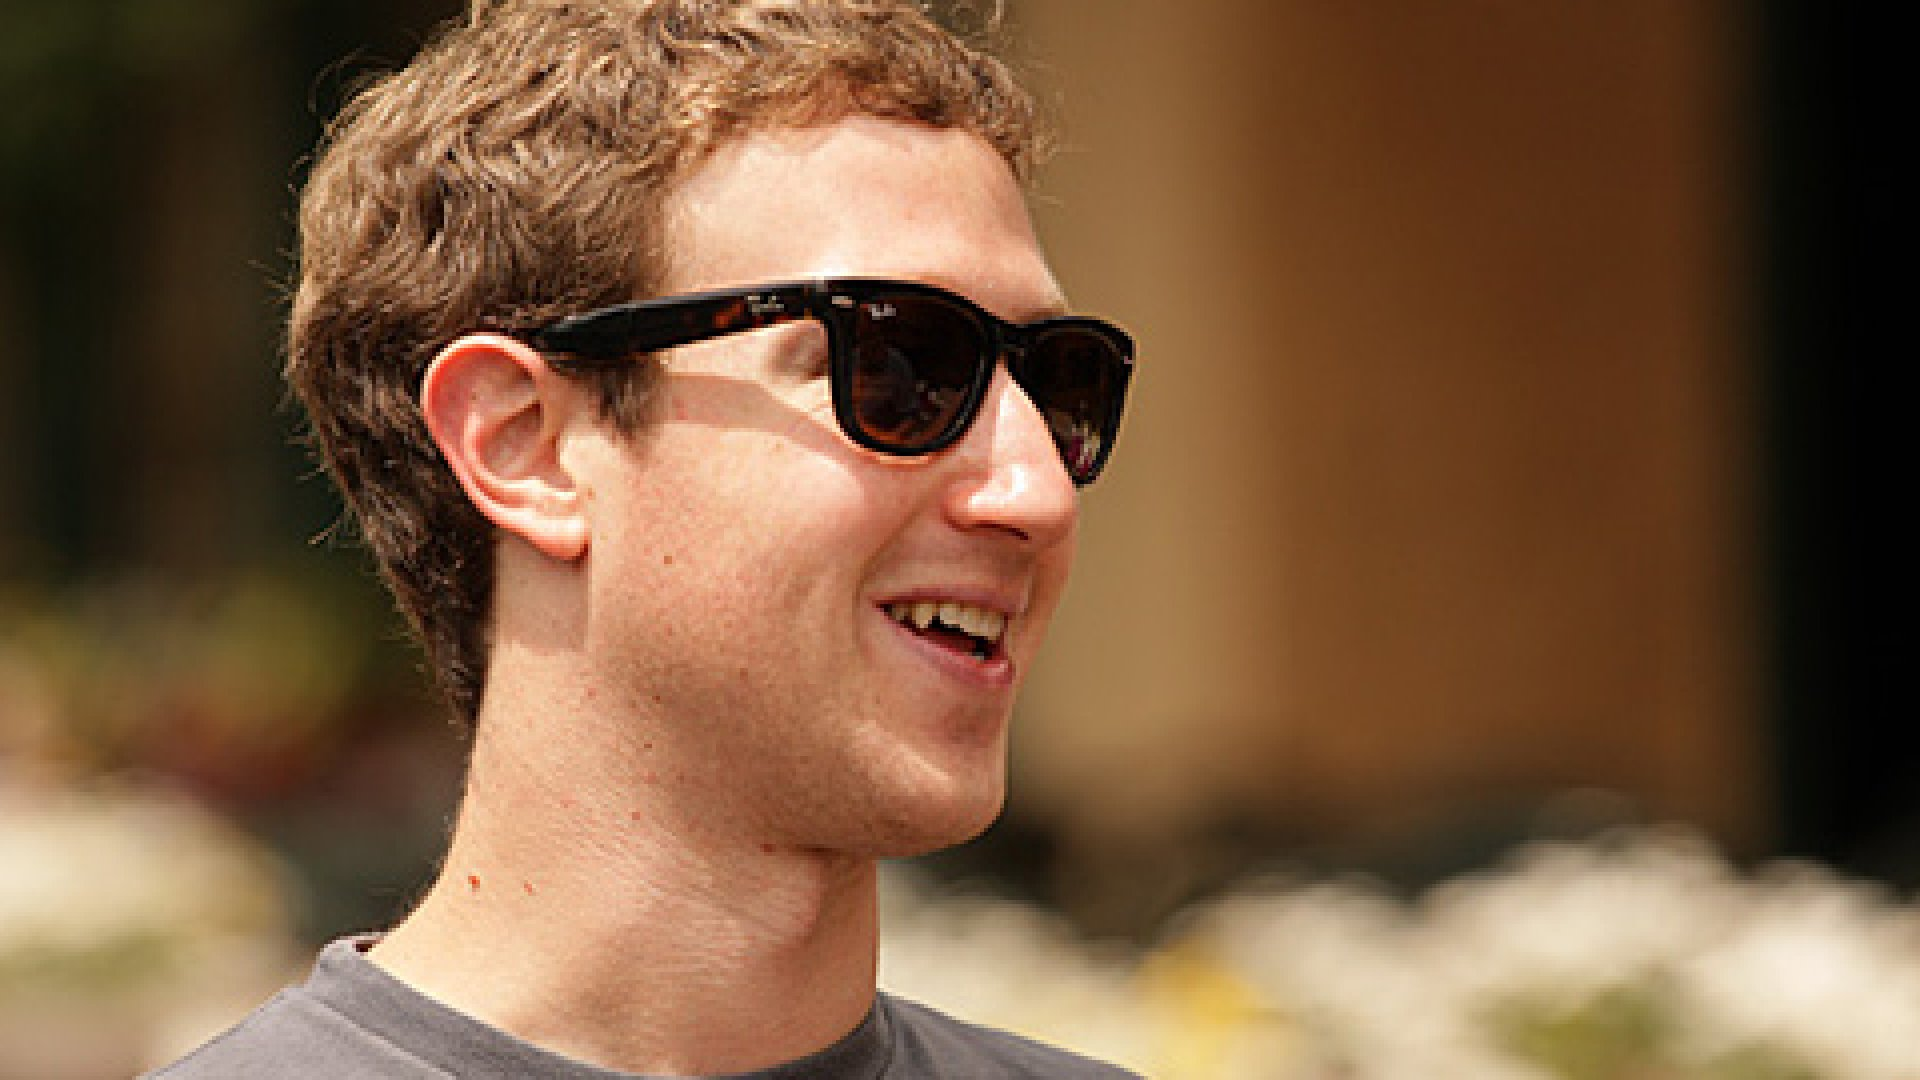 Mark Zuckerberg, the CEO and founder of Facebook, stands to become the world's richest 20-something after his company's IPO.